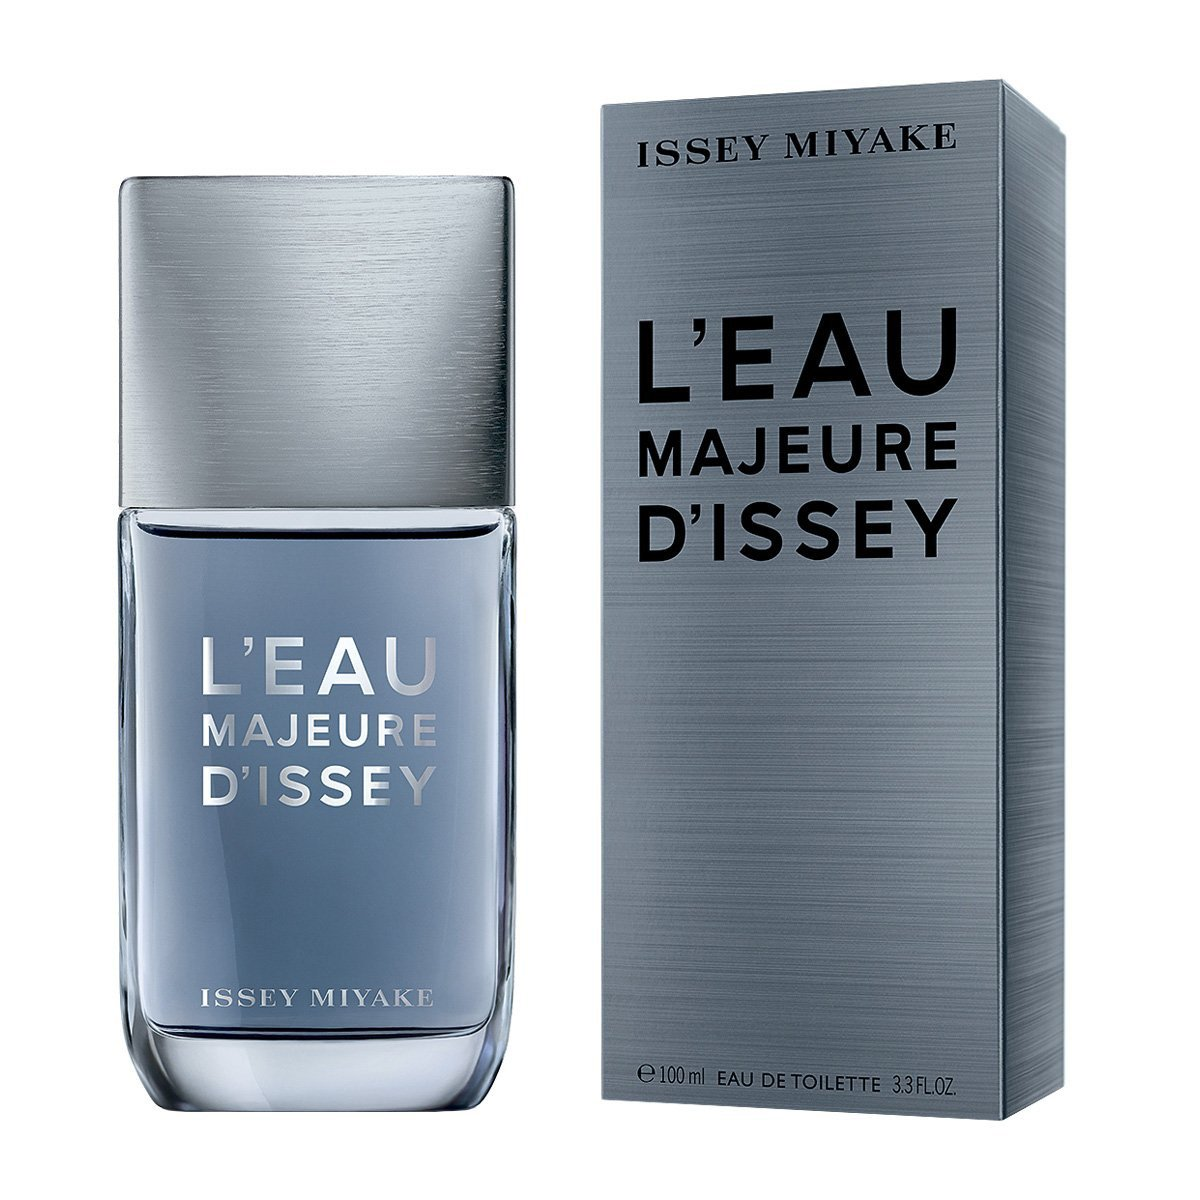 Issey Miyake - L'eau Majeure d'Issey